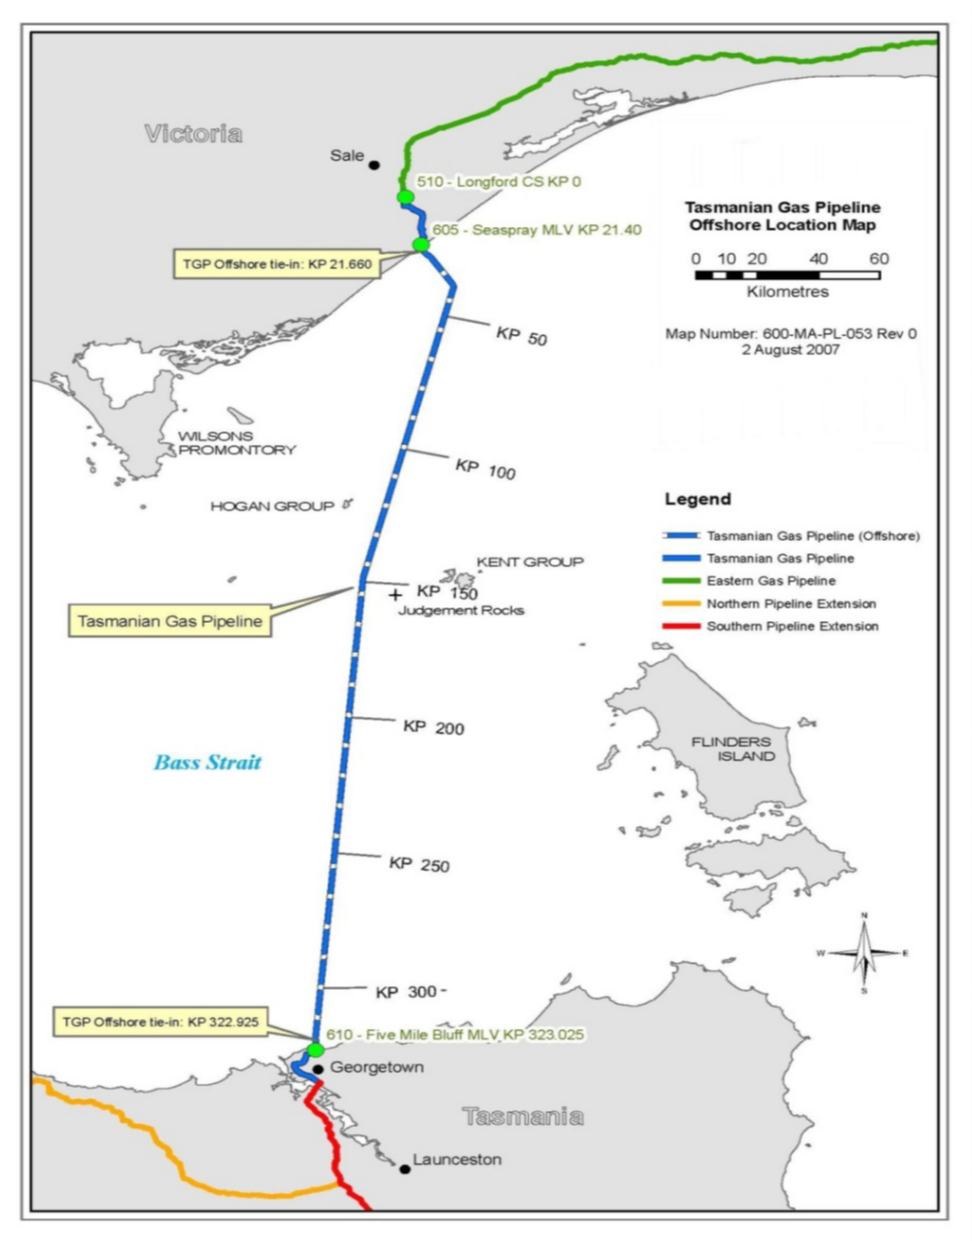 Project map - Tasmanian Gas Pipeline (refer to Description)